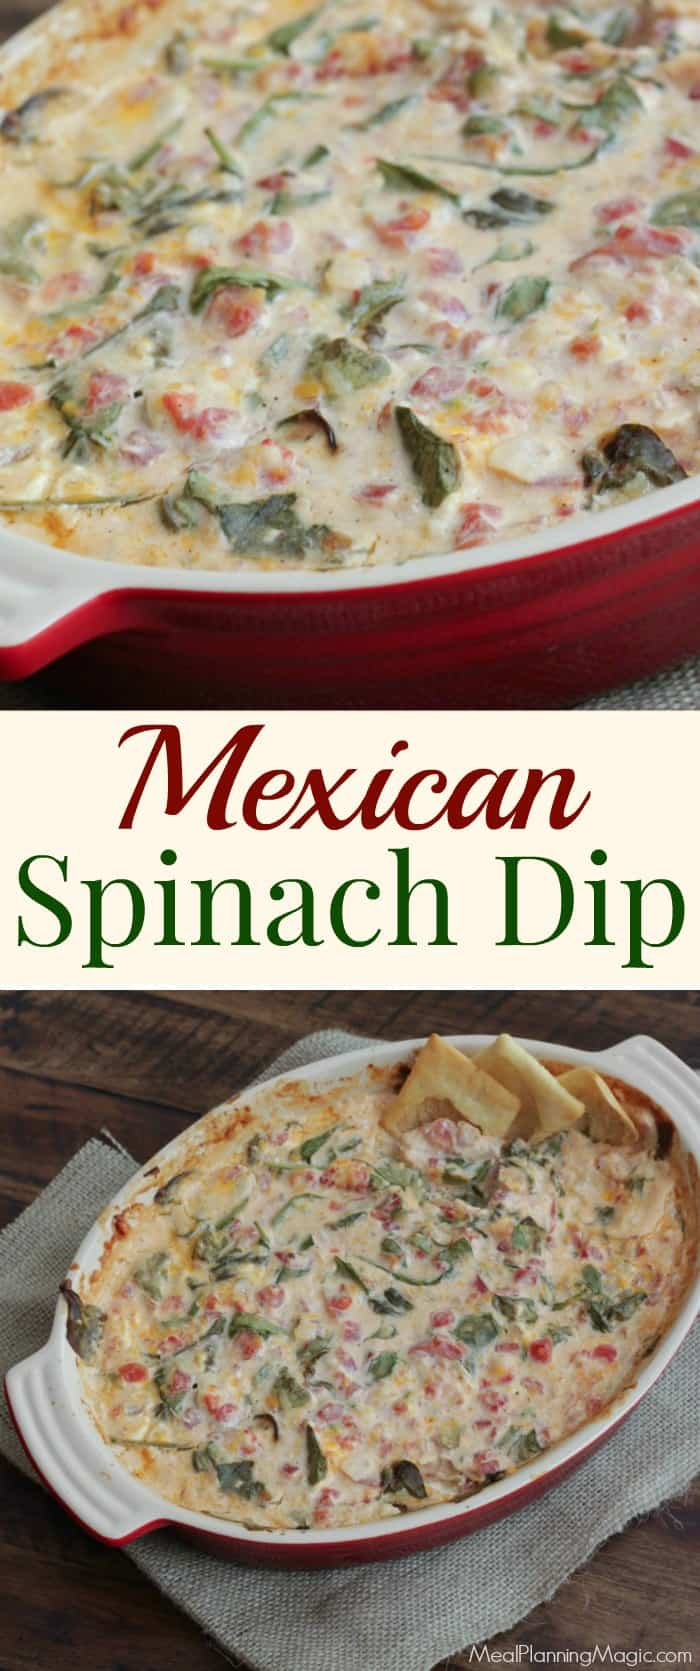 You'll love this twist on spinach dip! This Mexican Spinach Dip is made with all-natural ingredients, full of veggies and perfect for any occasion! | Find the recipe at MealPlanningMagic.com